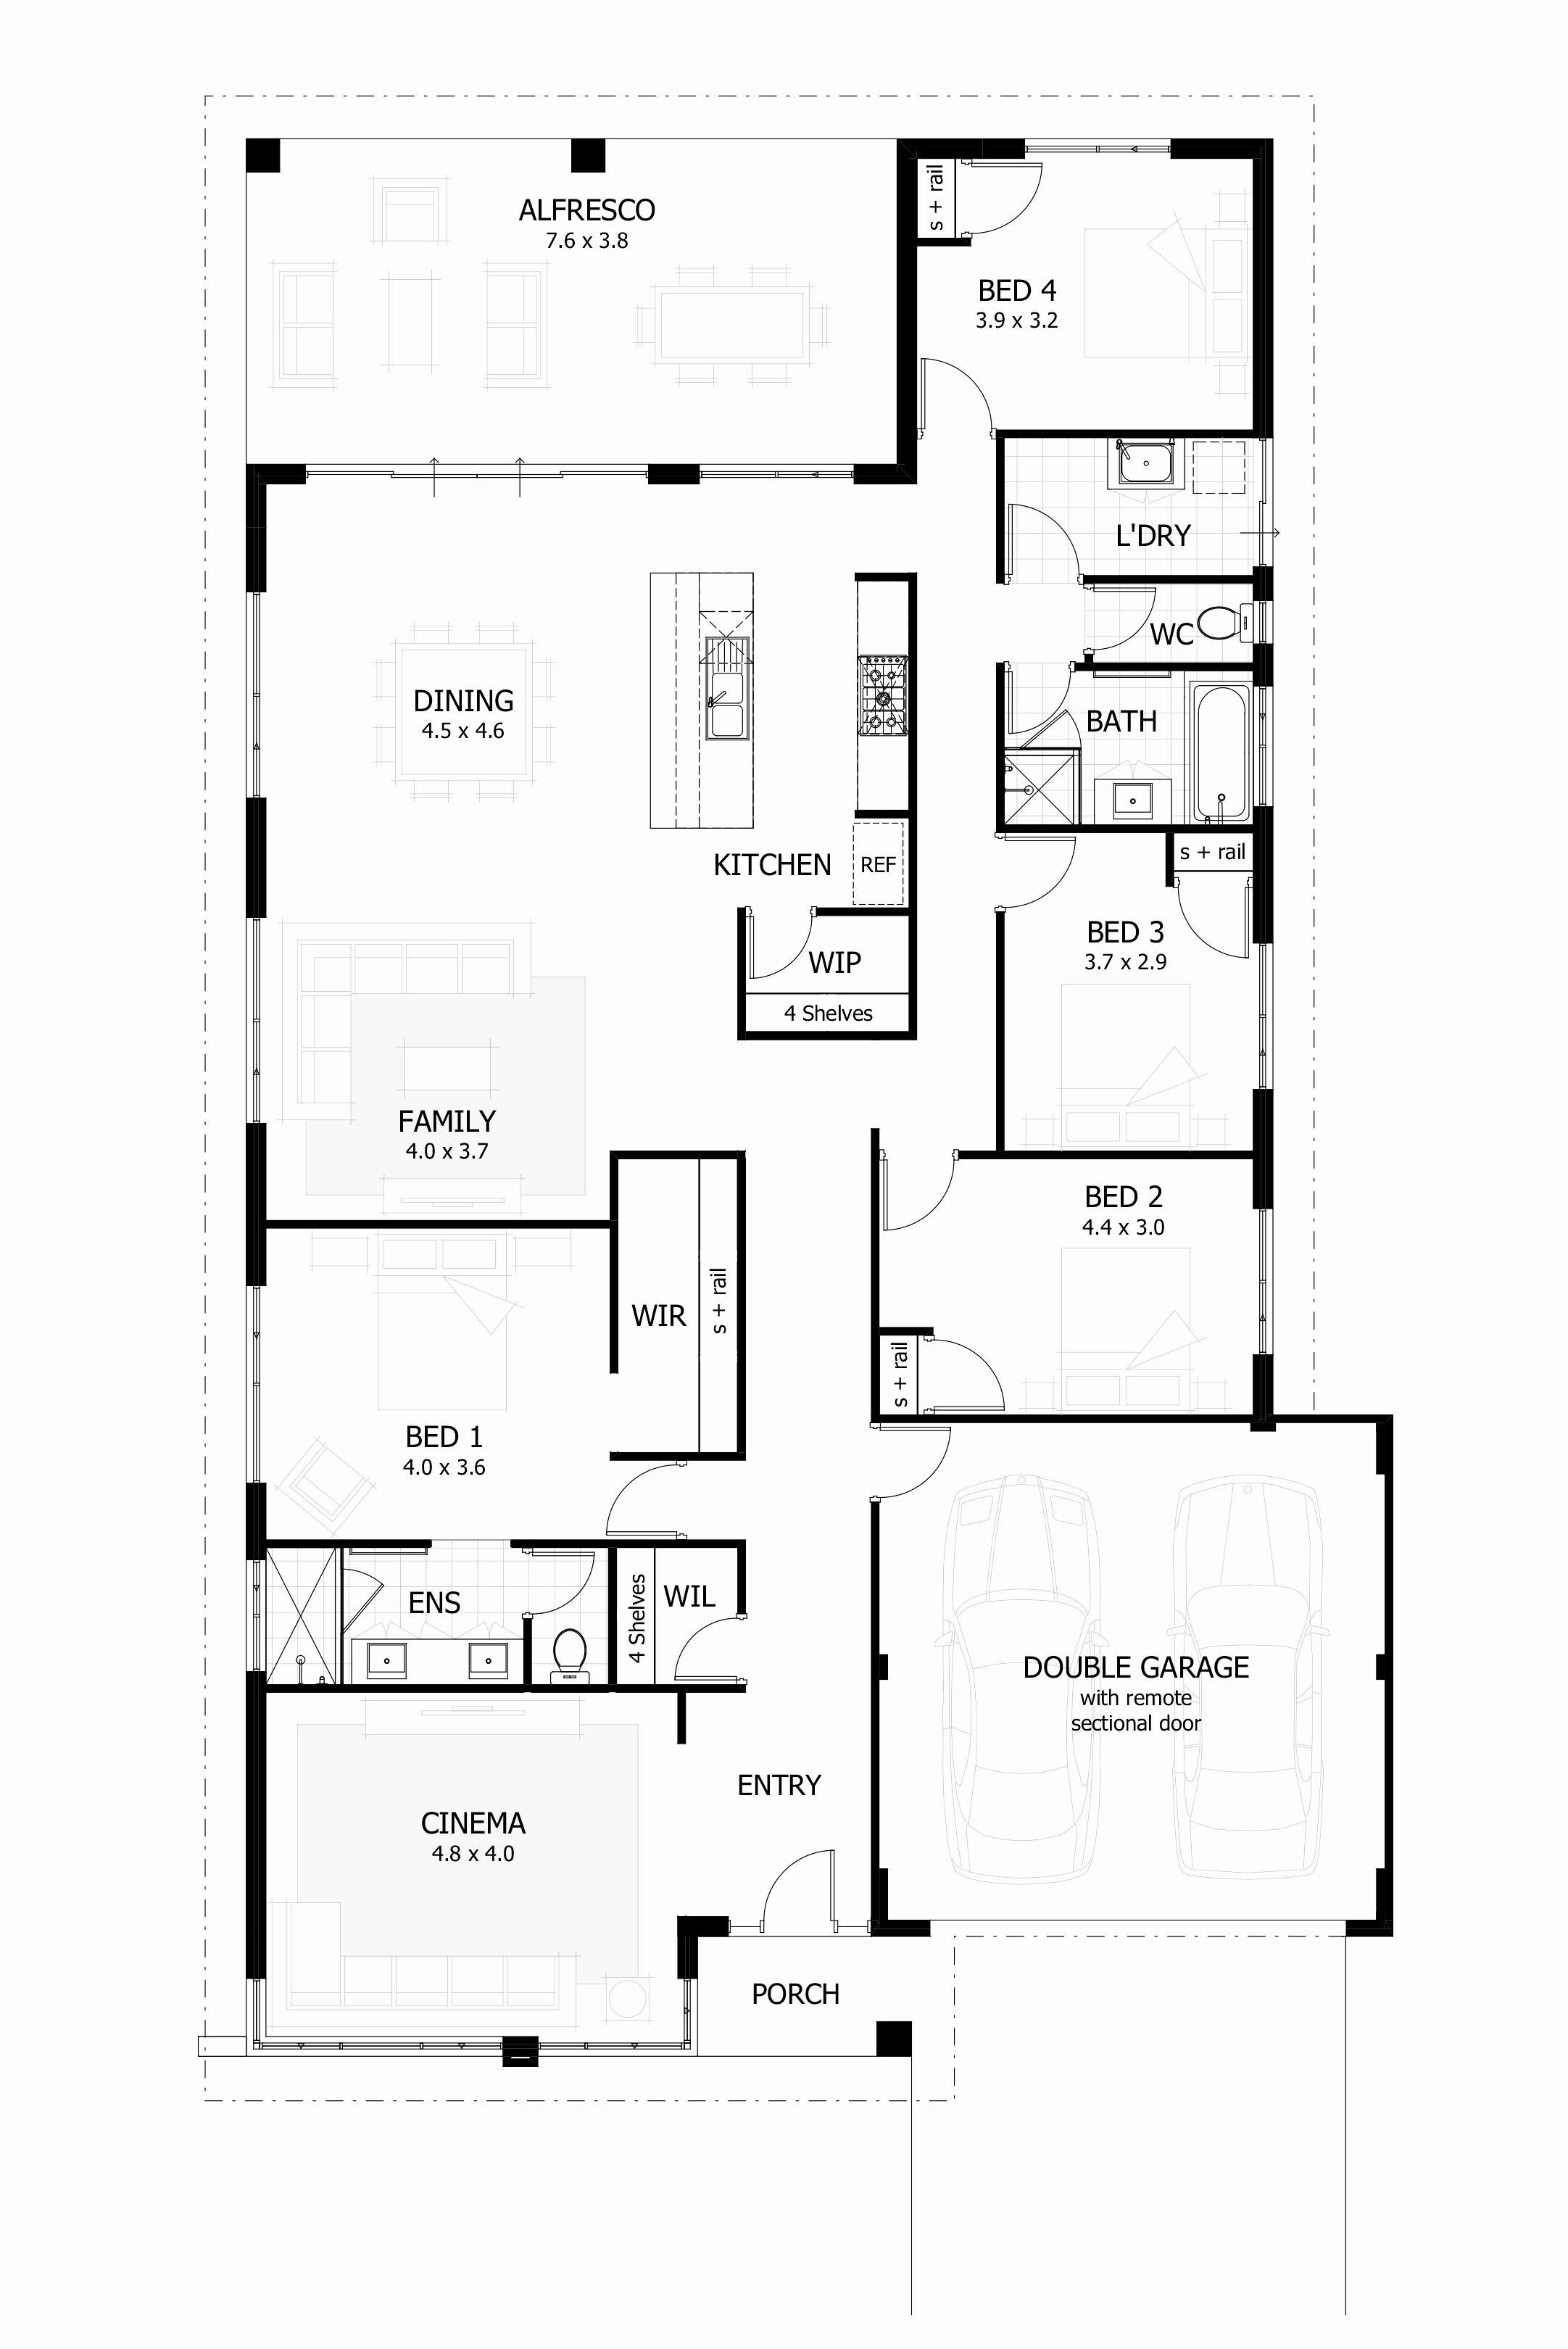 Free House Floor Plans Lovely Beautiful 4 Bedroom House Plans Pdf Free Download Unique 3